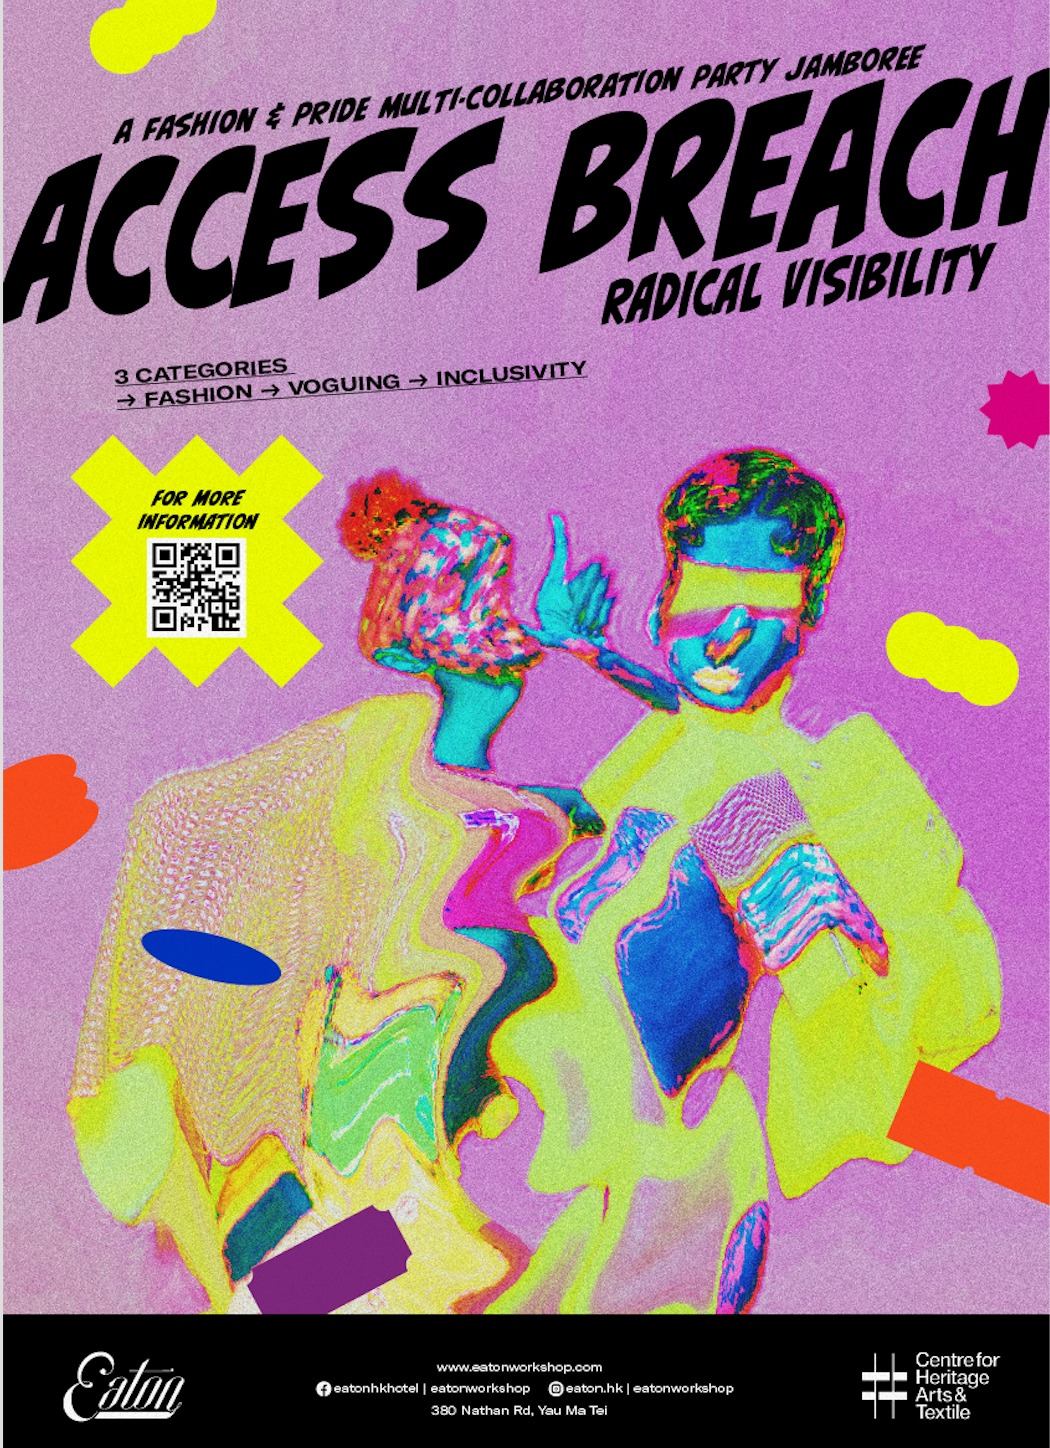 Access Breach: Radical Visibility Fashion show poster by Eaton HK. This poster depicts a distorted image of two people colored in different neon colors, with funky 80's shapes encircling them.